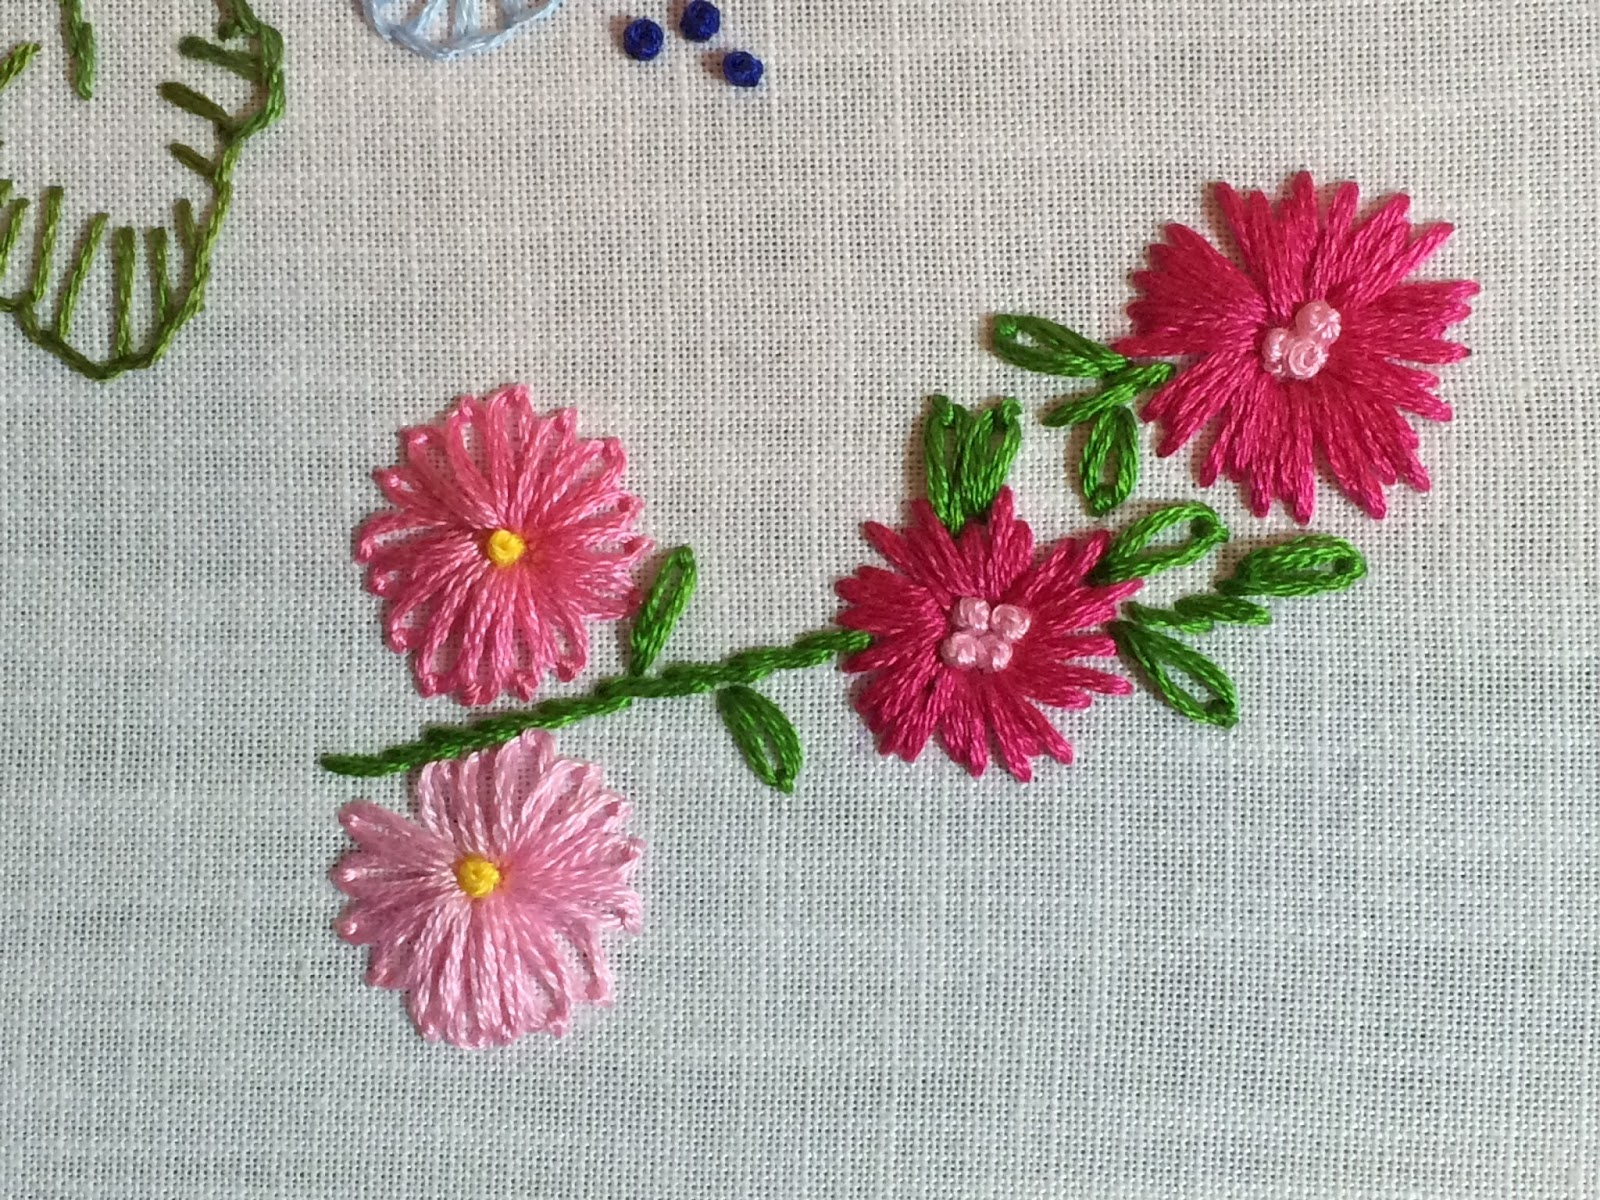 Flower stitch embroidery gardening and vegetables